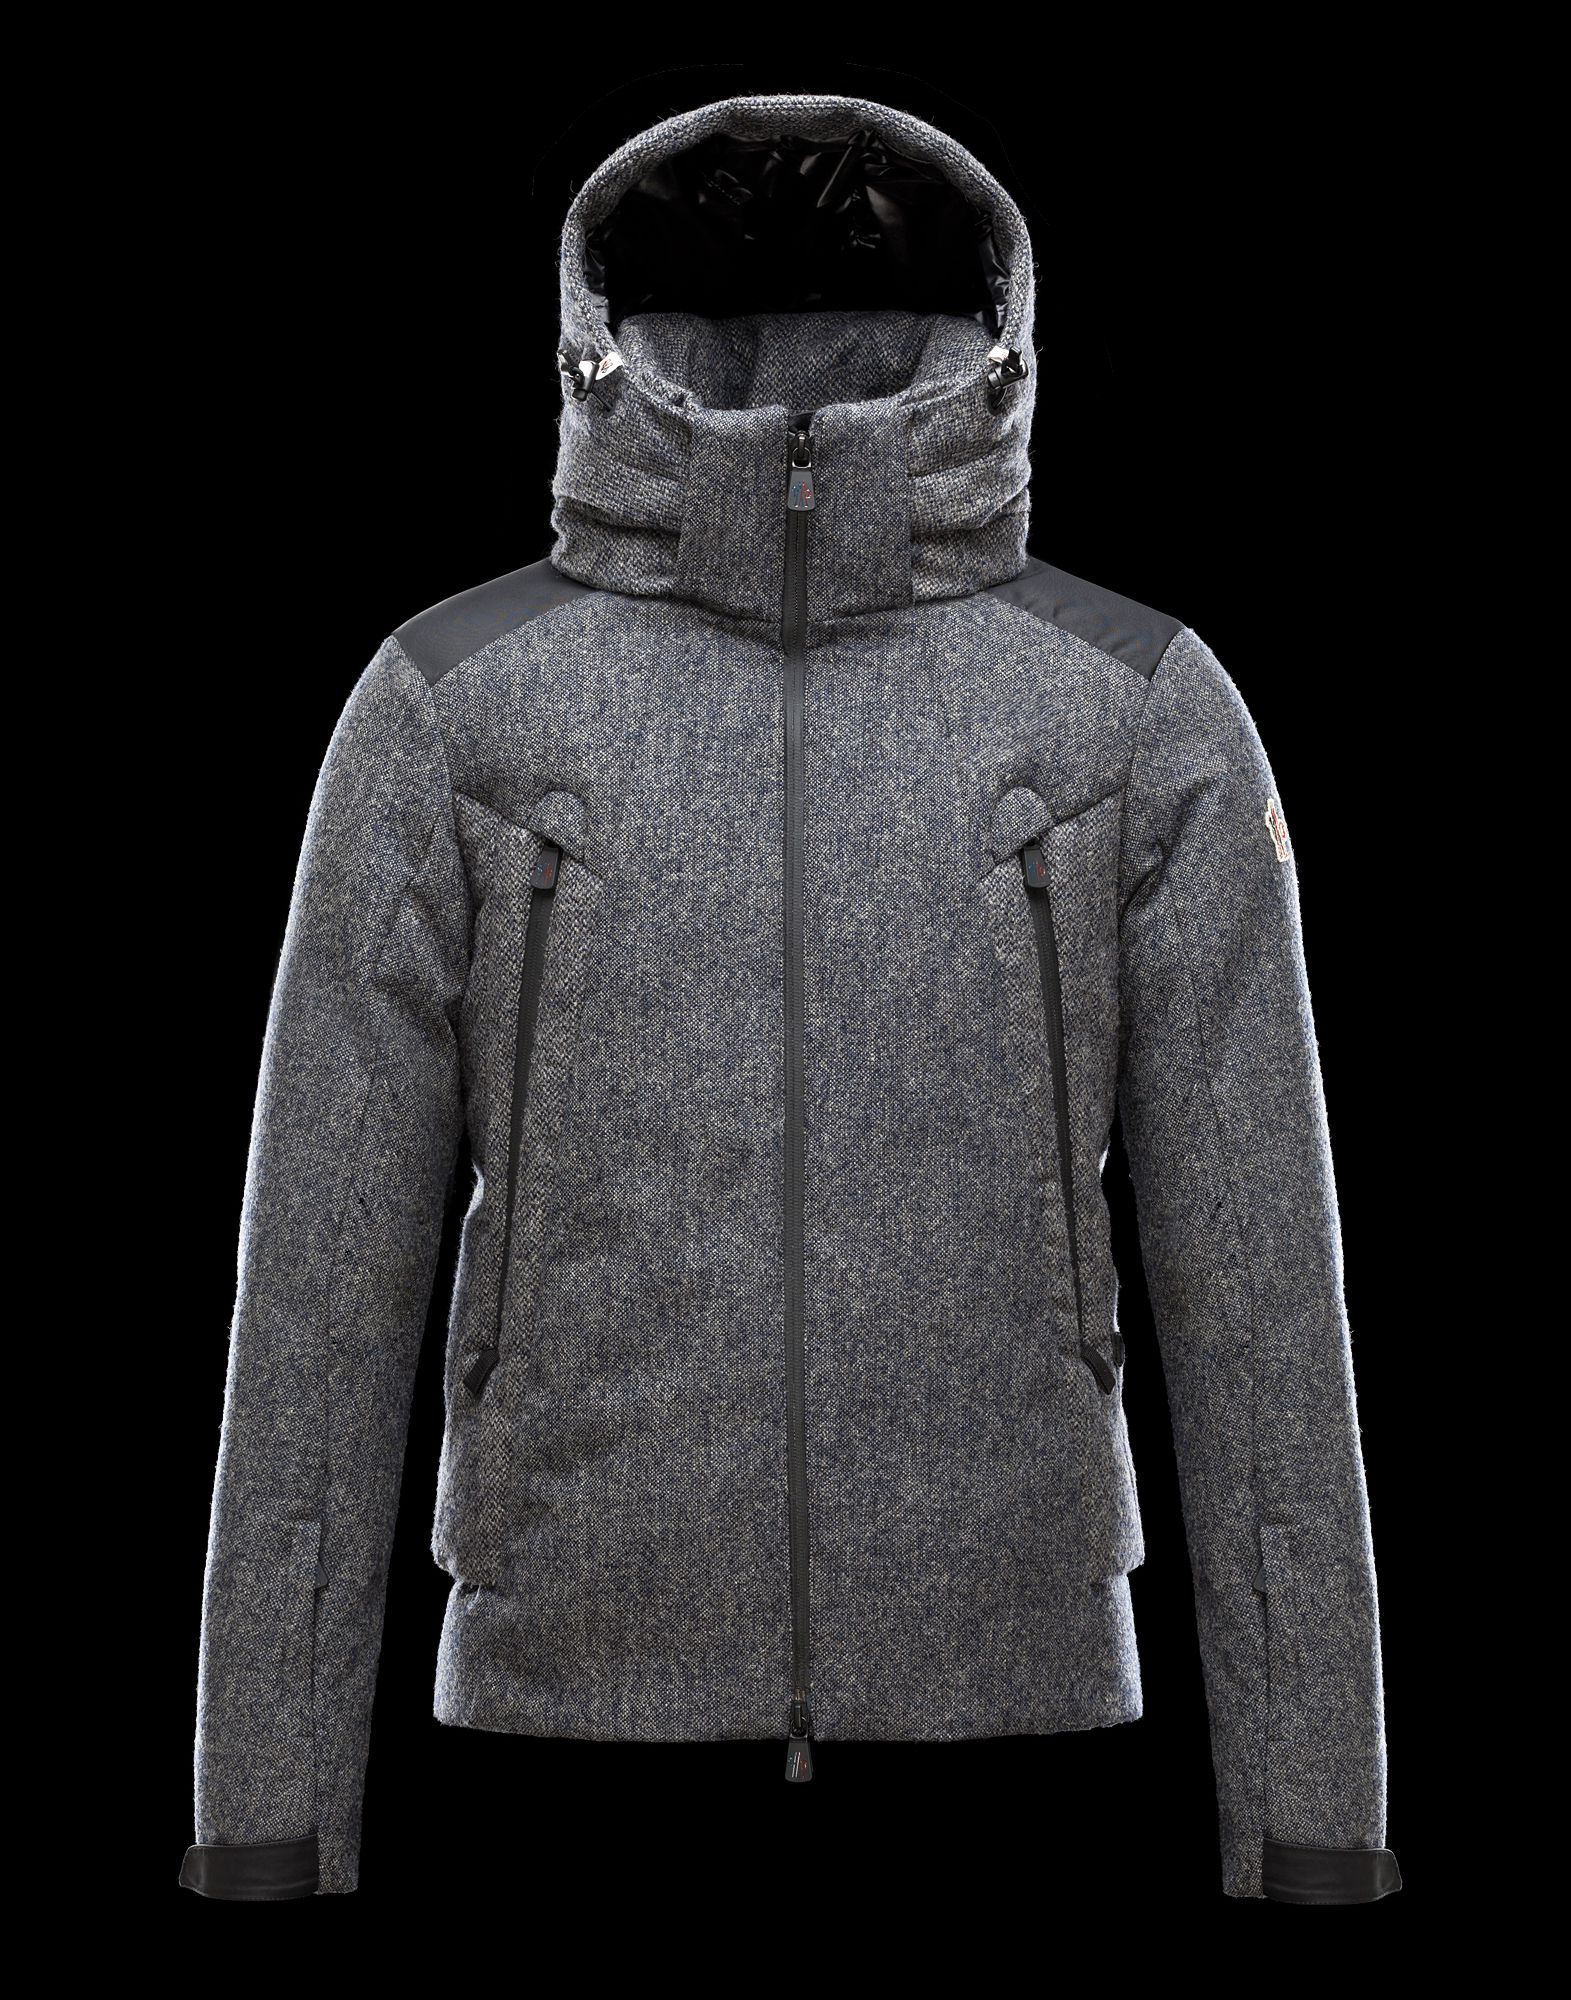 9355d032f56 MONCLER GRENOBLE Men - Fall/Winter 12 - OUTERWEAR - Jacket - DEVON ...